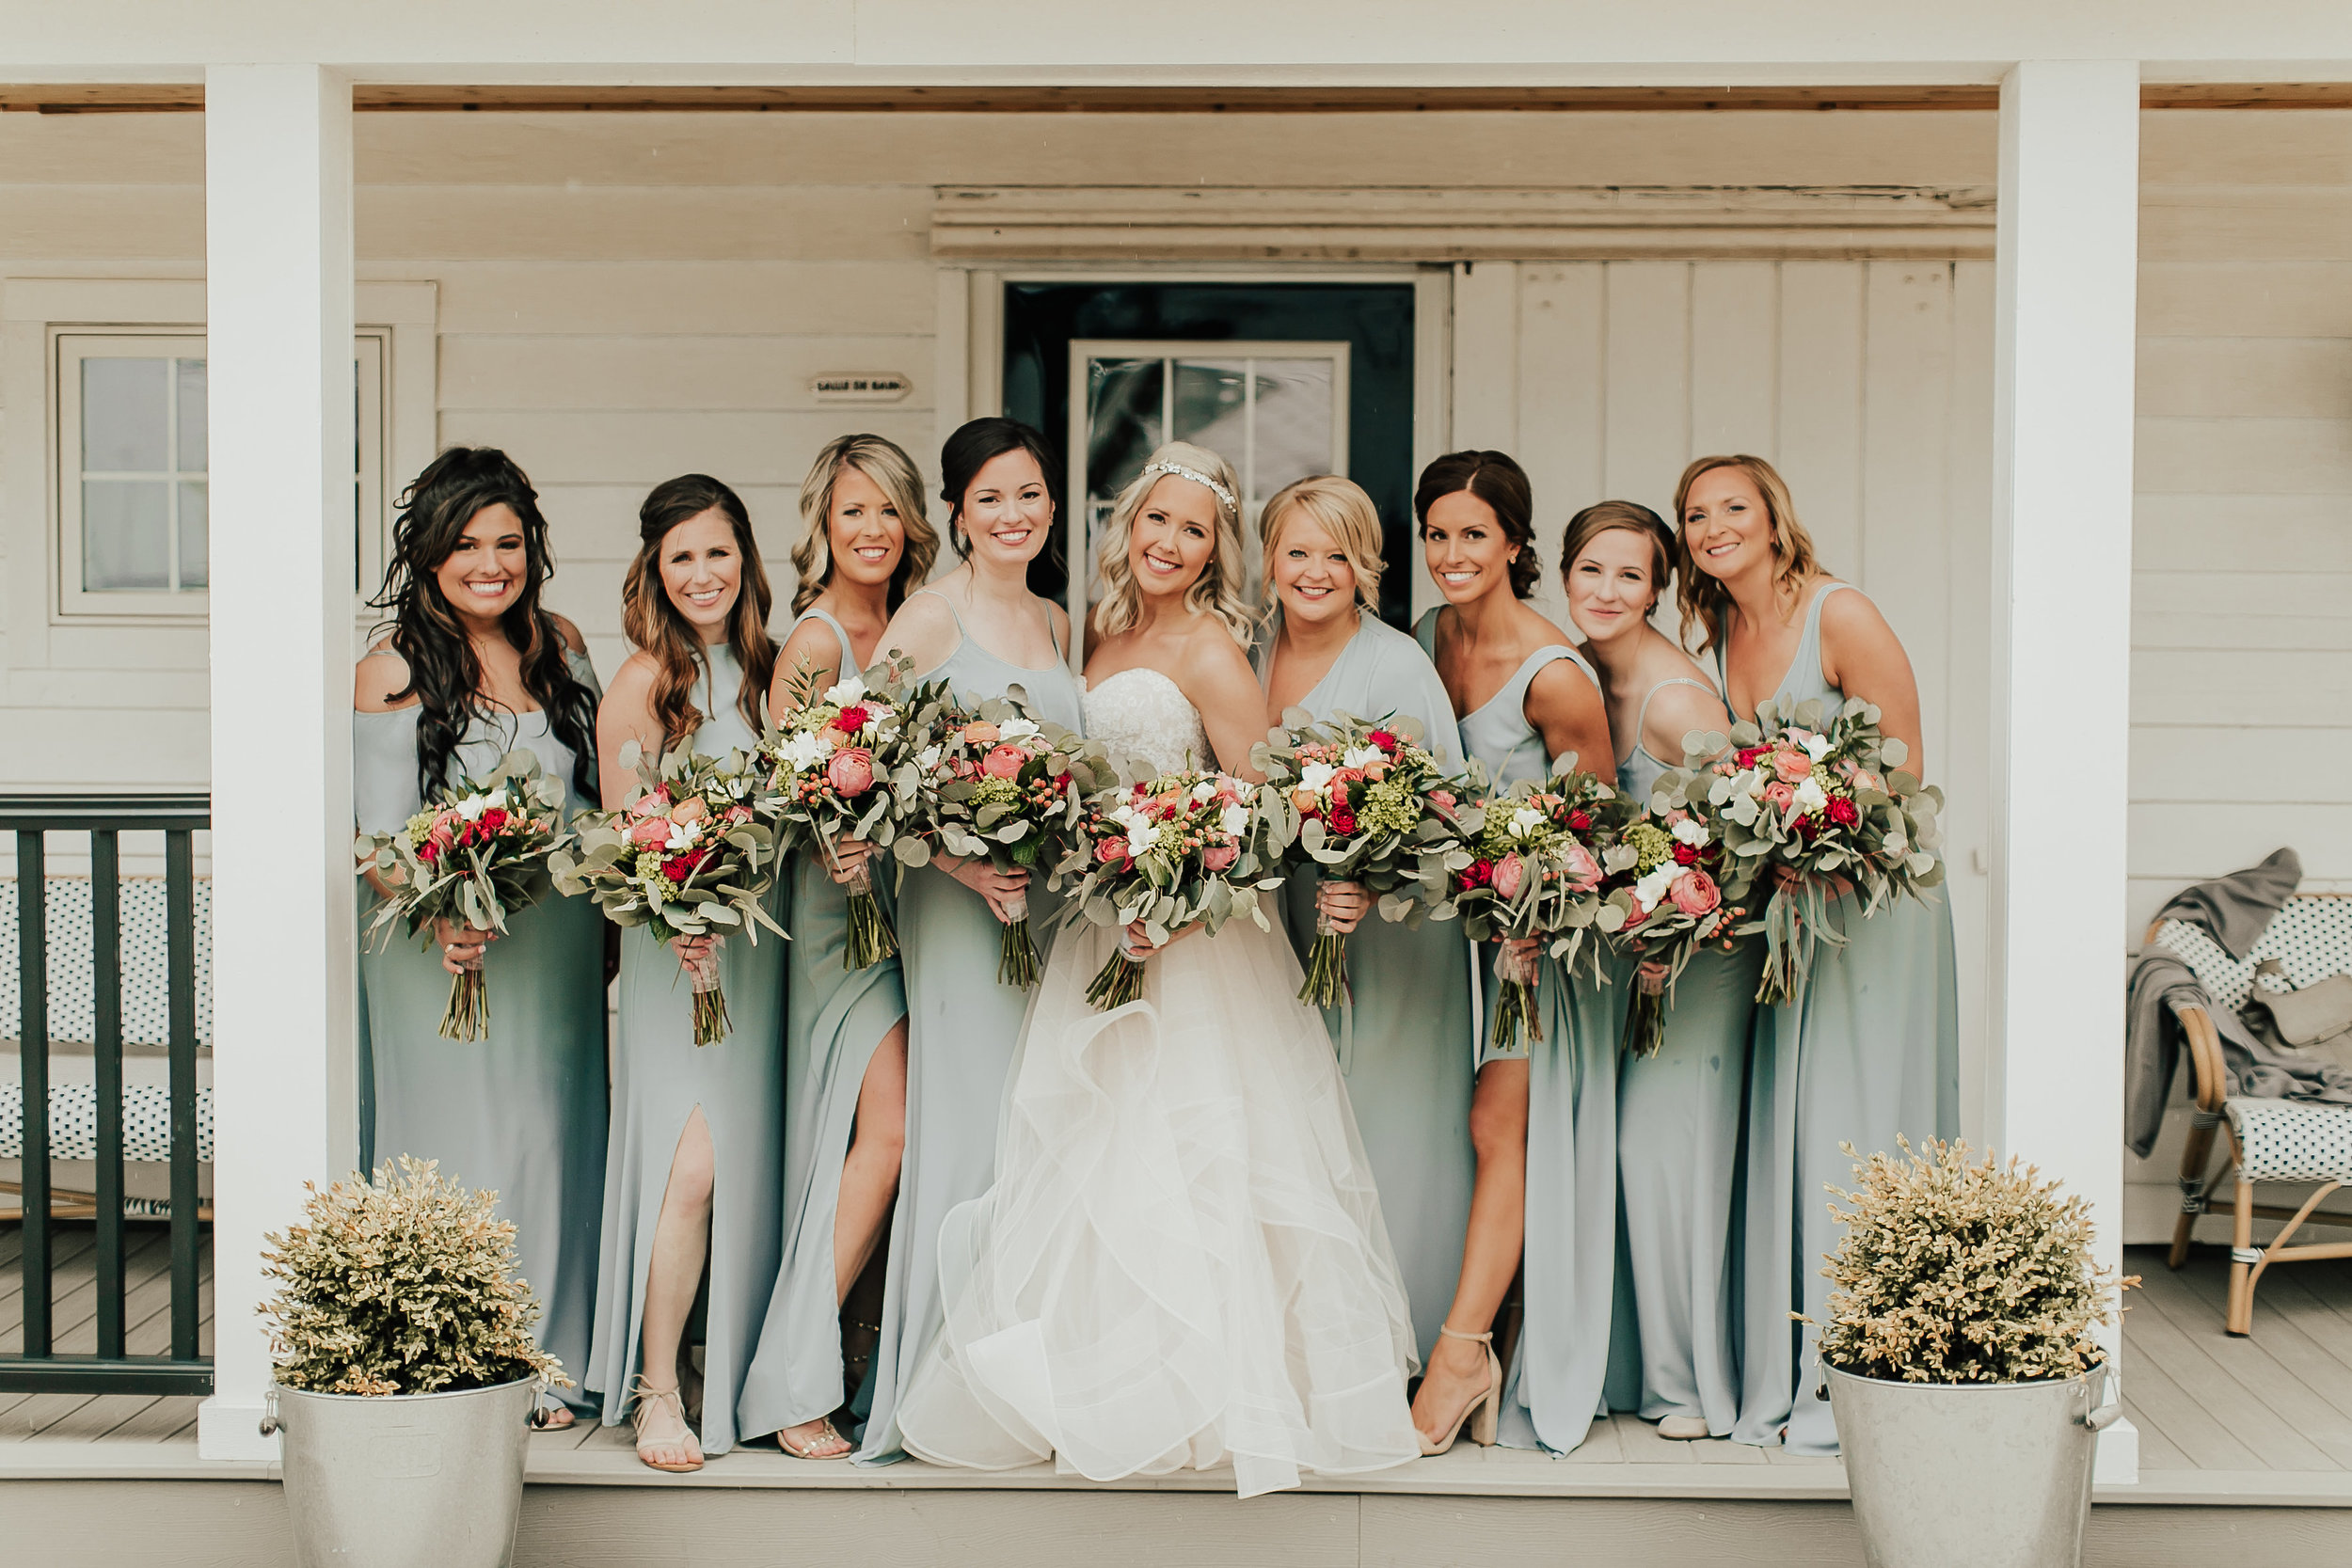 Legacy-Hil-Farm-Wedding-Bridesmaids-MN.jpg